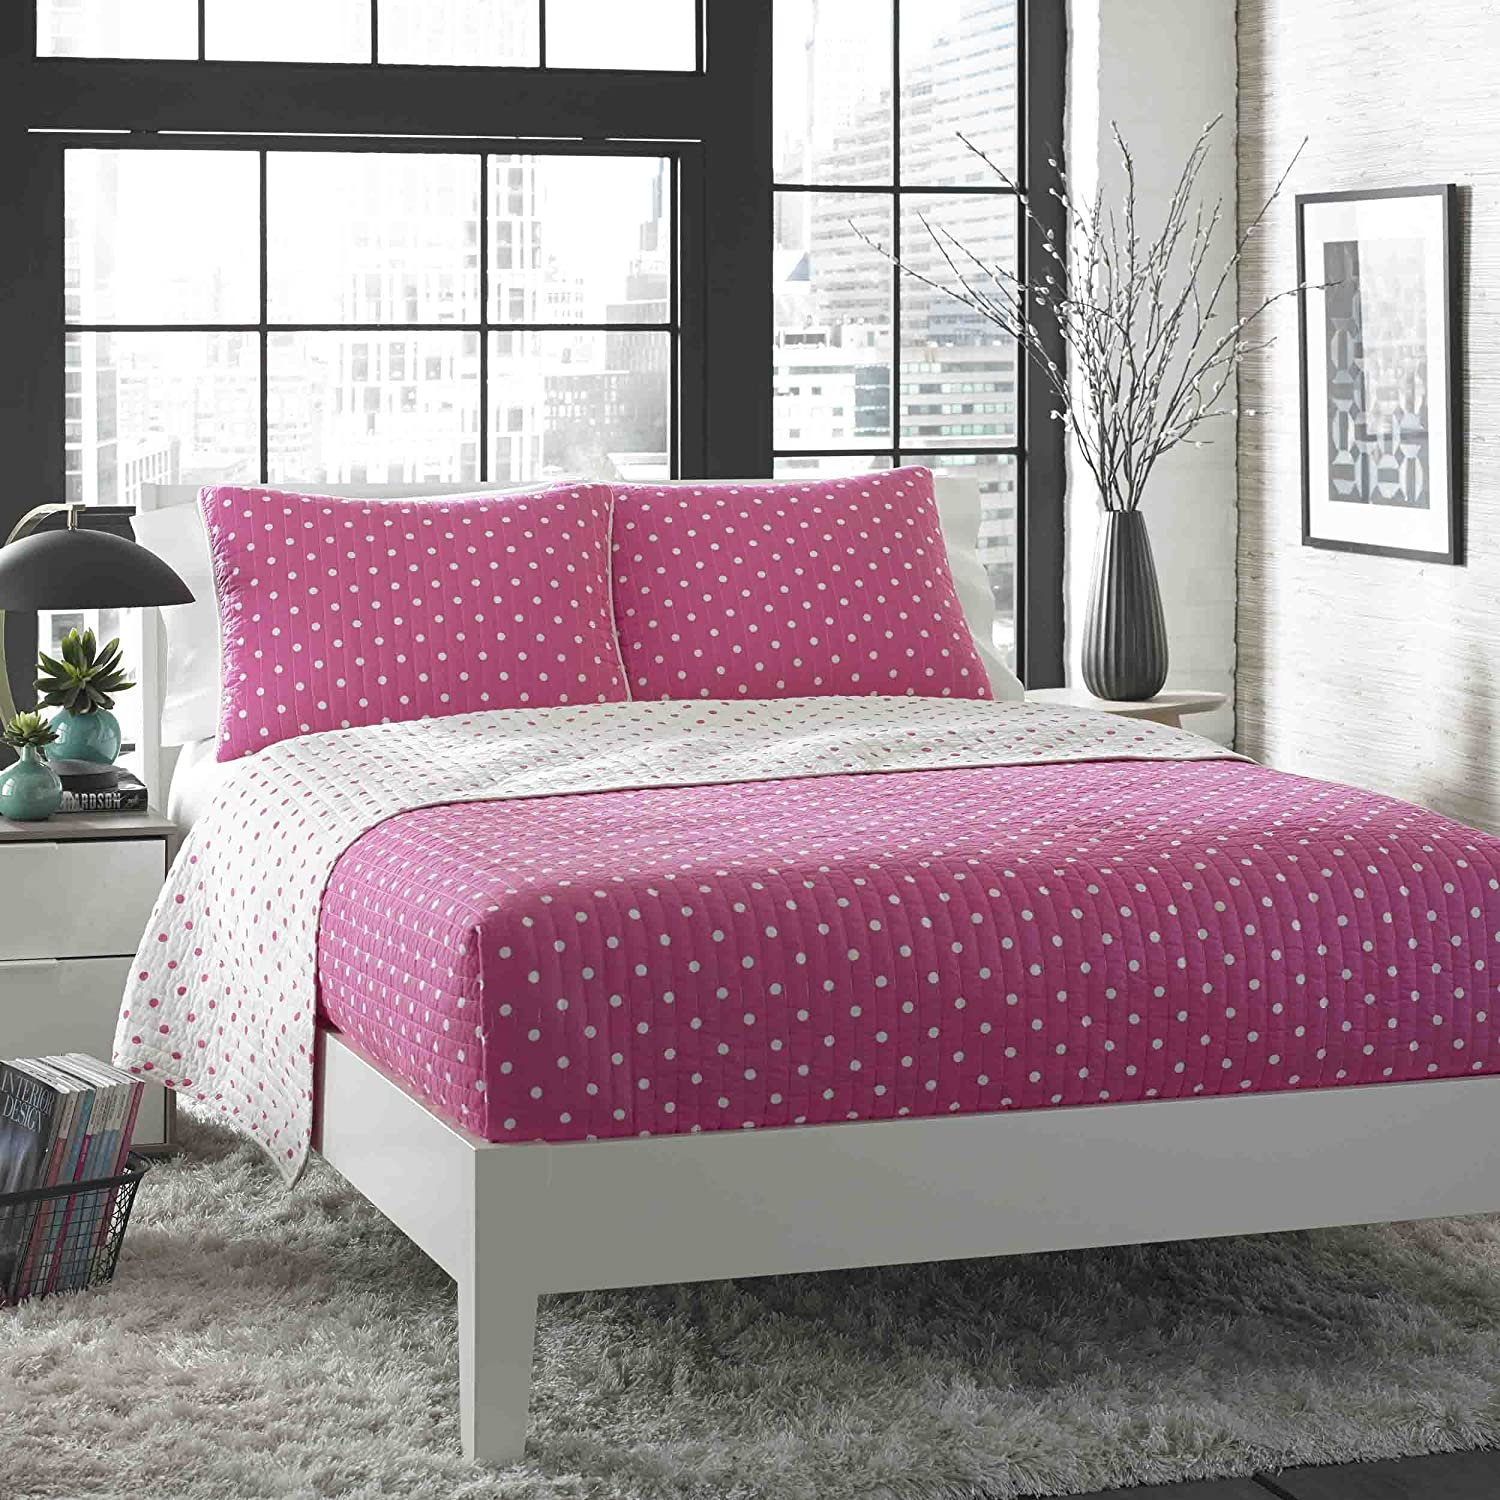 City Scene Bedding Sets – Ease Bedding with Style